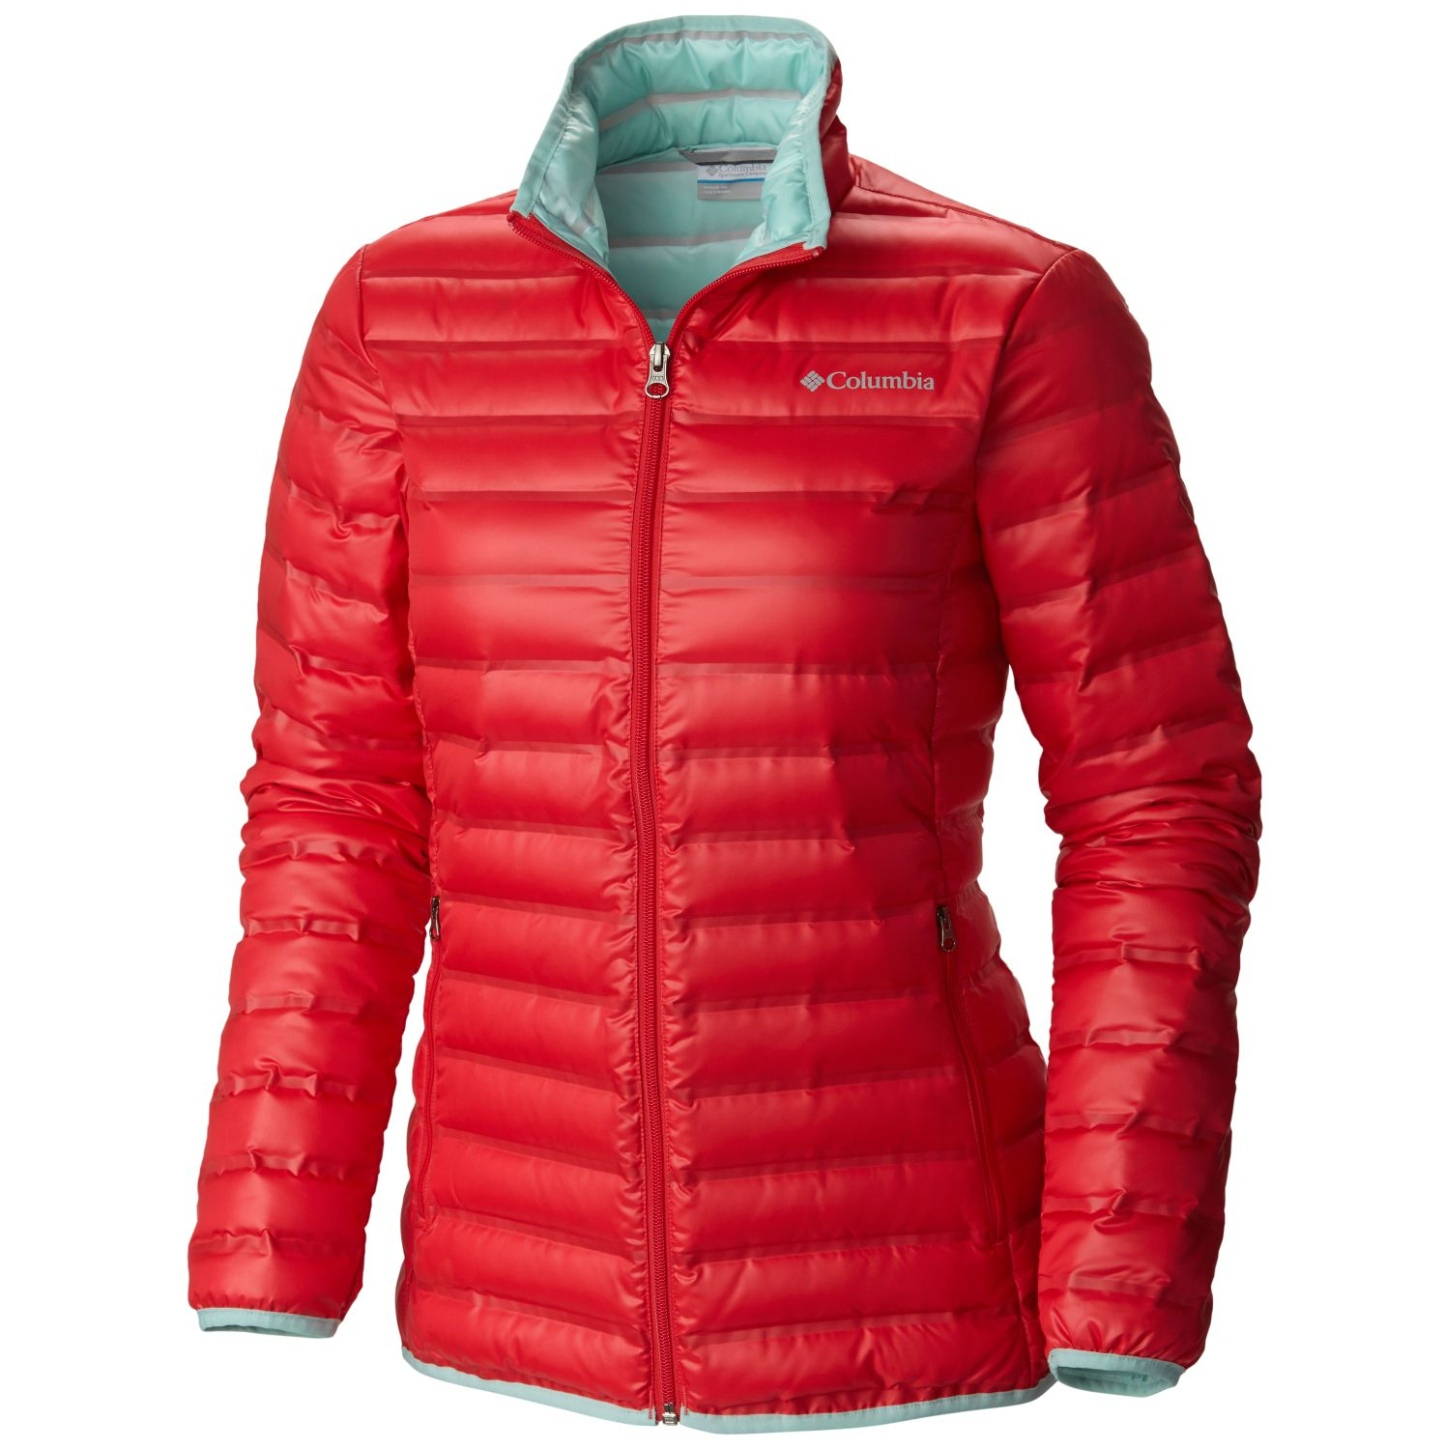 Columbia Women's Flash Forward Down Jacket Red Camellia, Spray-30